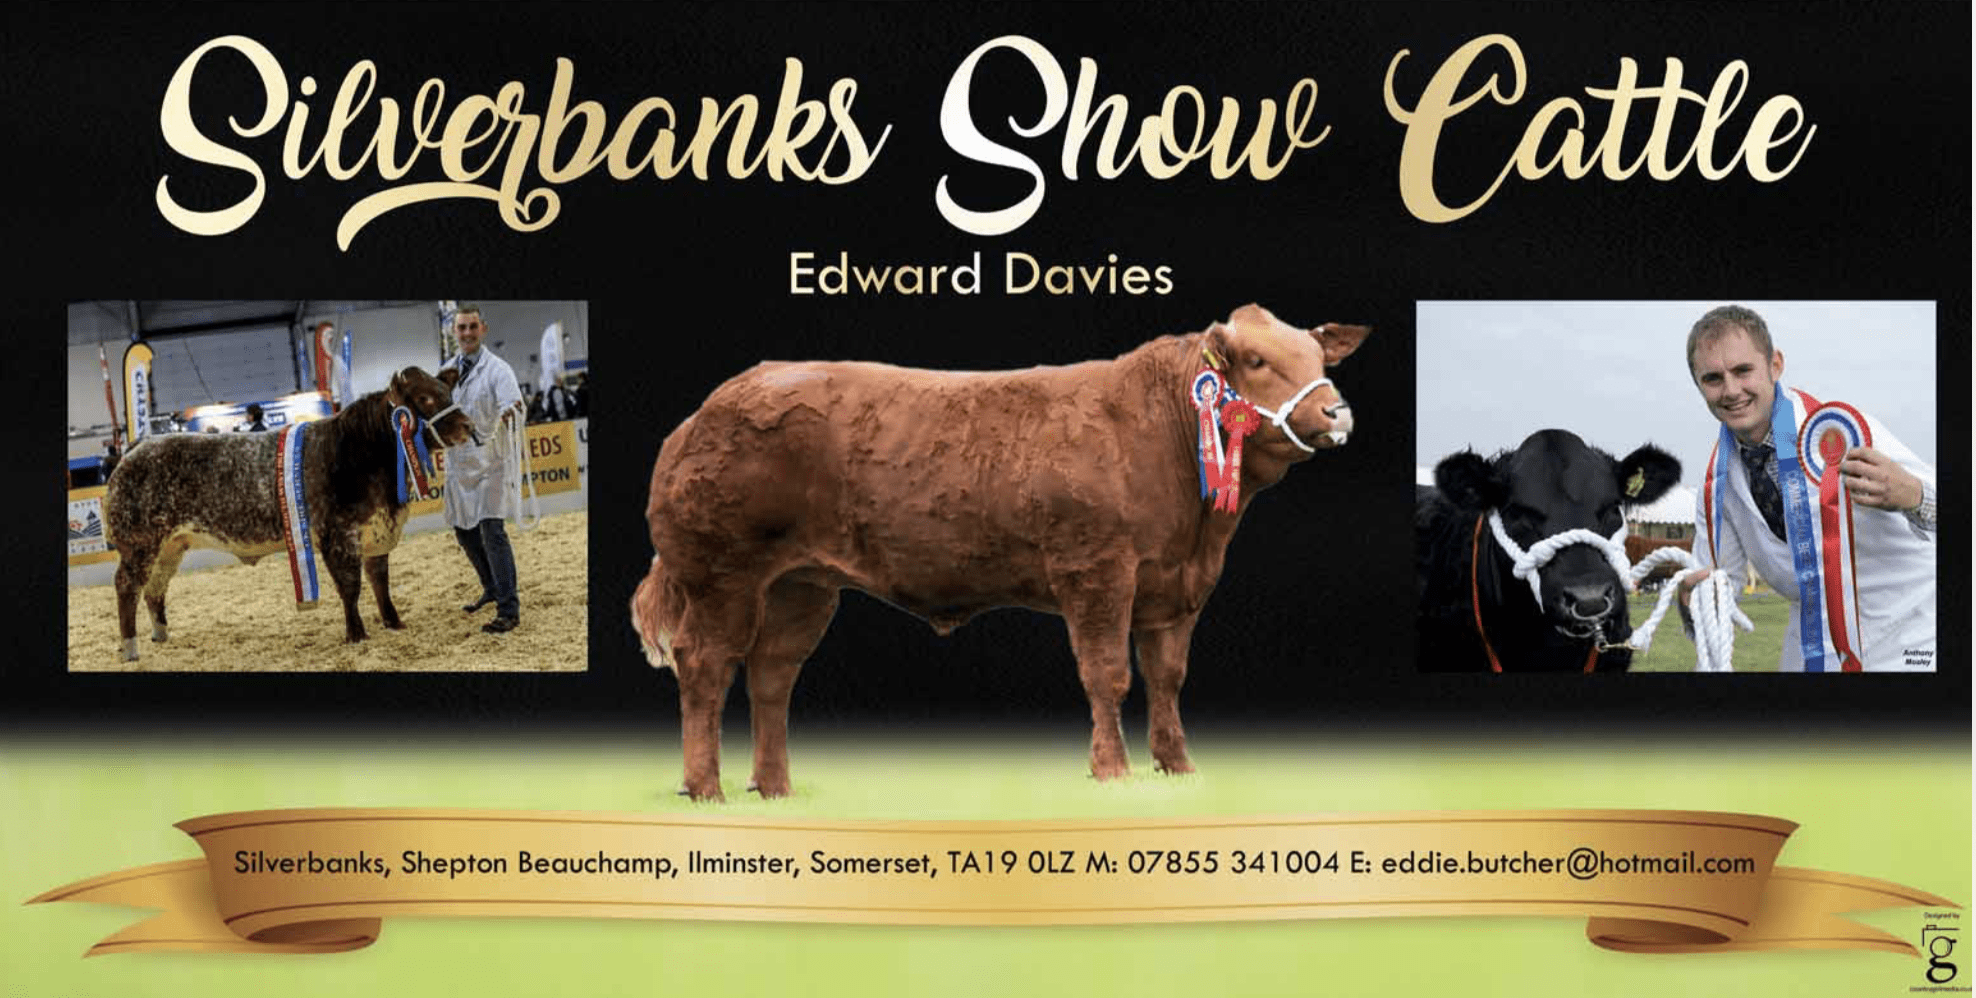 Banner design for Silverbanks Show Cattle